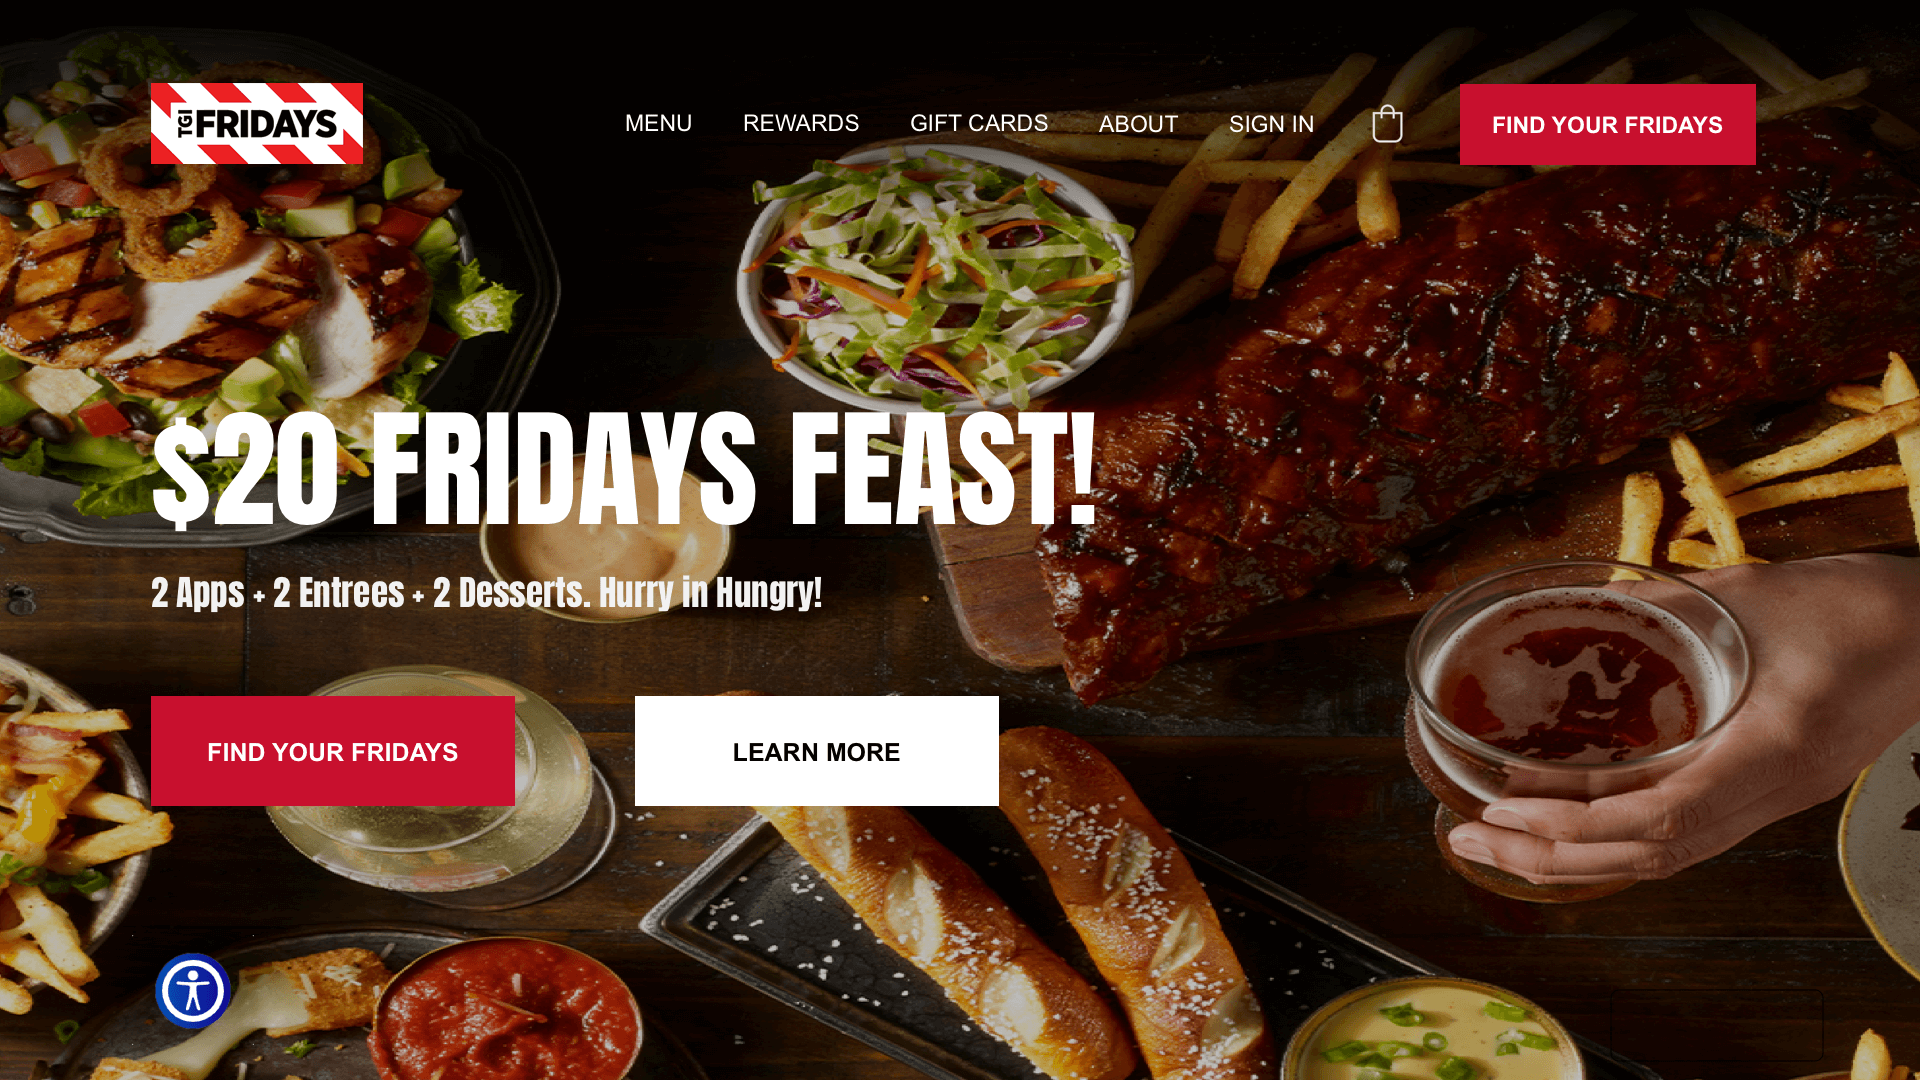 Section 1 redesign concept of TGI Fridays' website.